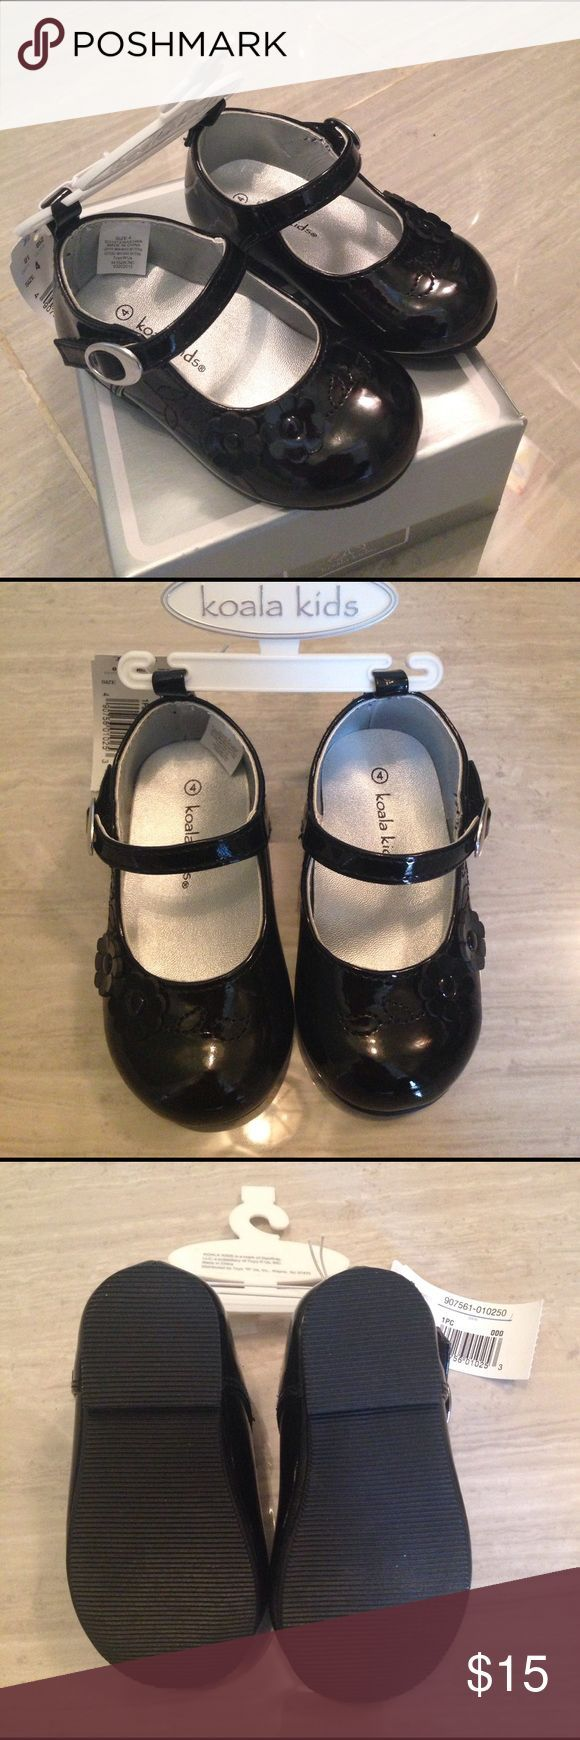 NWT toddler girl dress shoes This dress shoe is perfect for special occasions like weddings, easter, Christmas, or church. Black, size 4, true to size. Man made leather. From a smoke free, pet free home. Koala Kids Shoes Dress Shoes